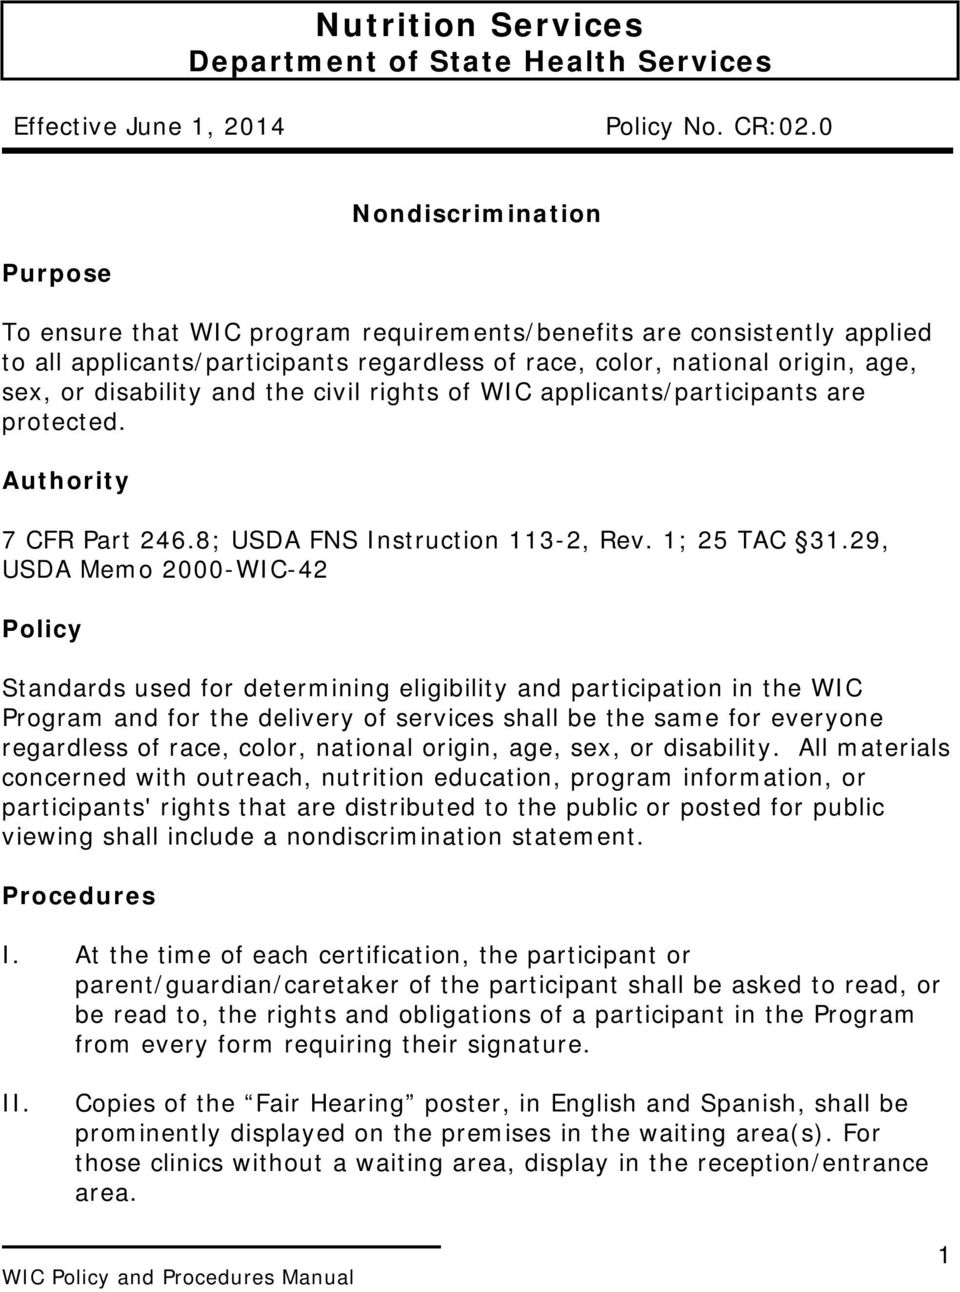 disability and the civil rights of WIC applicants/participants are protected. Authority 7 CFR Part 246.8; USDA FNS Instruction 113-2, Rev. 1; 25 TAC 31.